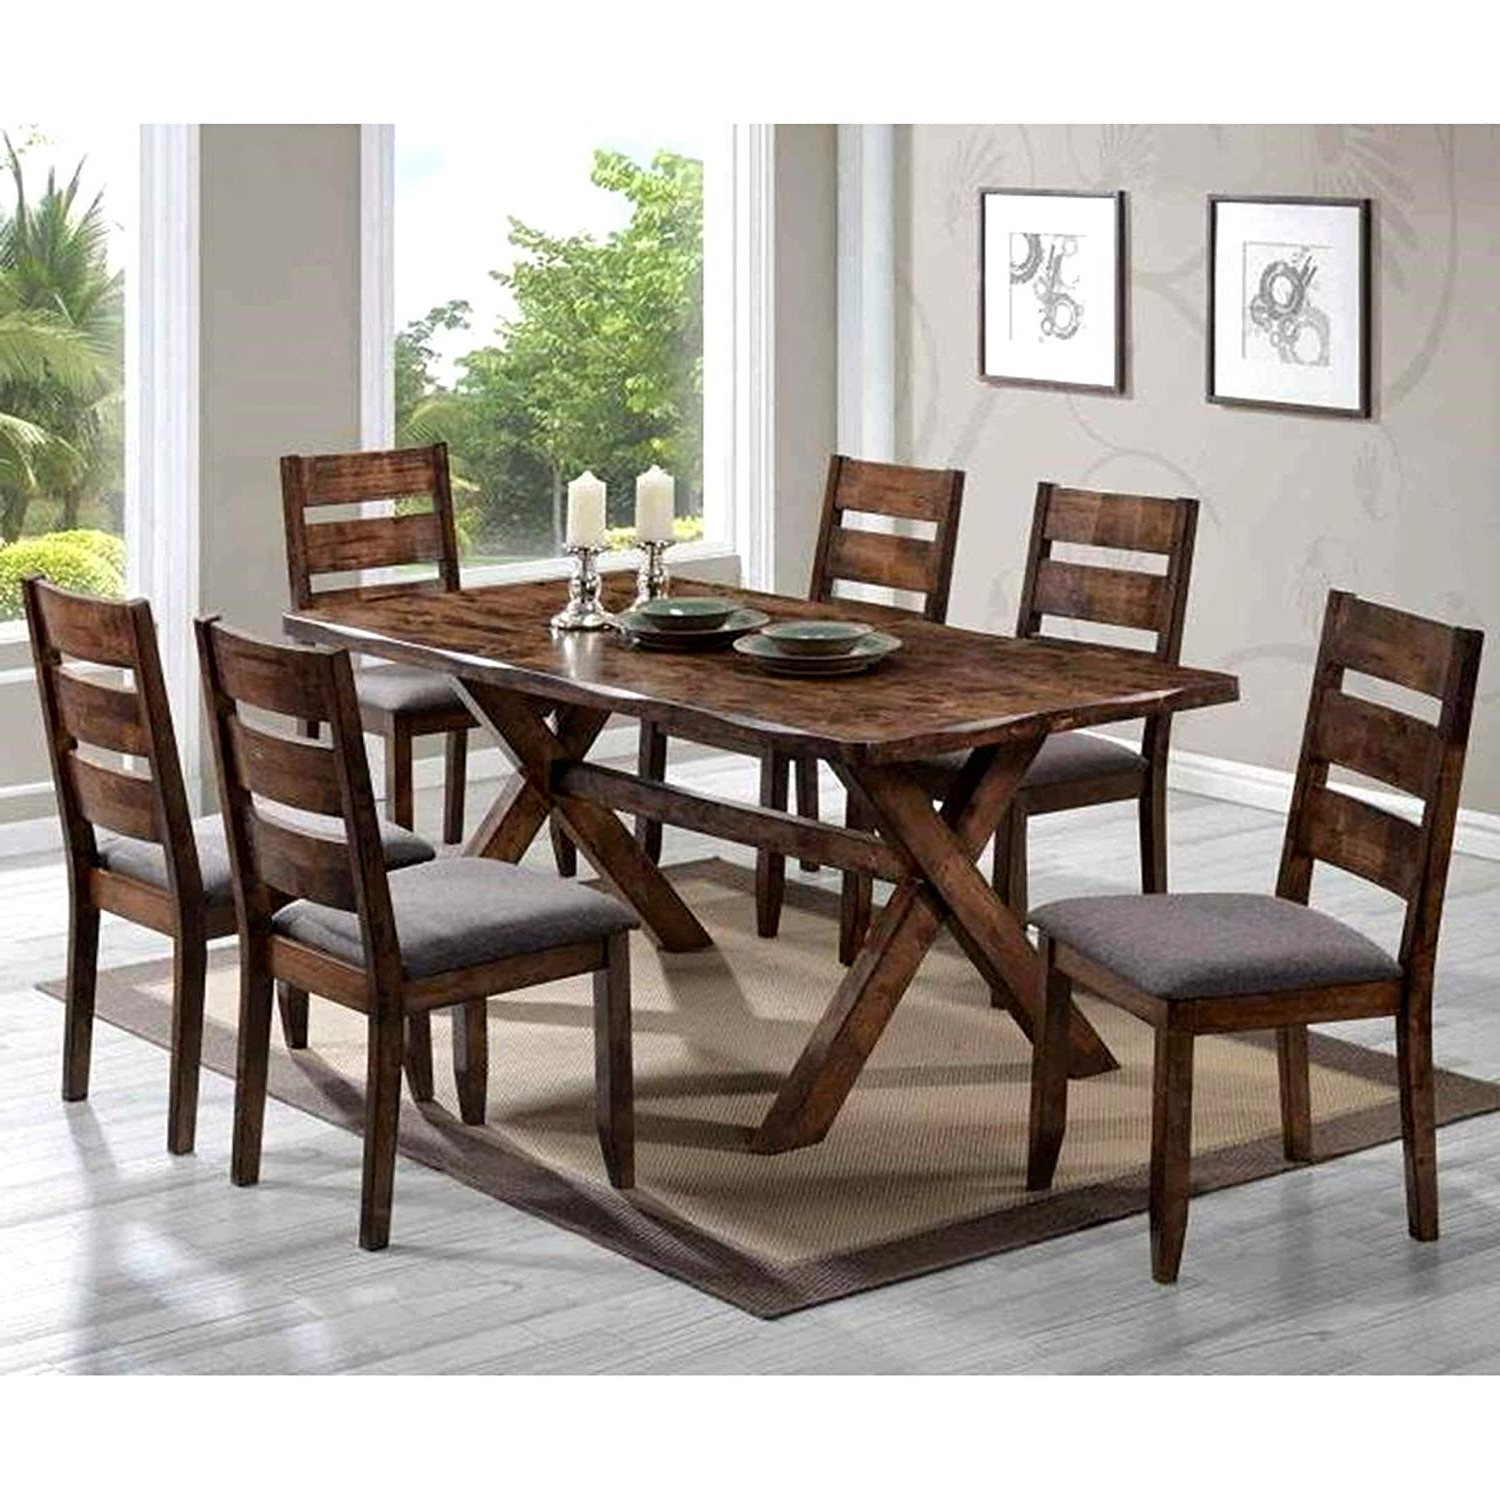 2017 Large Rustic Look Dining Tables For Amazon – A Line Furniture Milano Rustic Knotty Shaped (View 21 of 30)